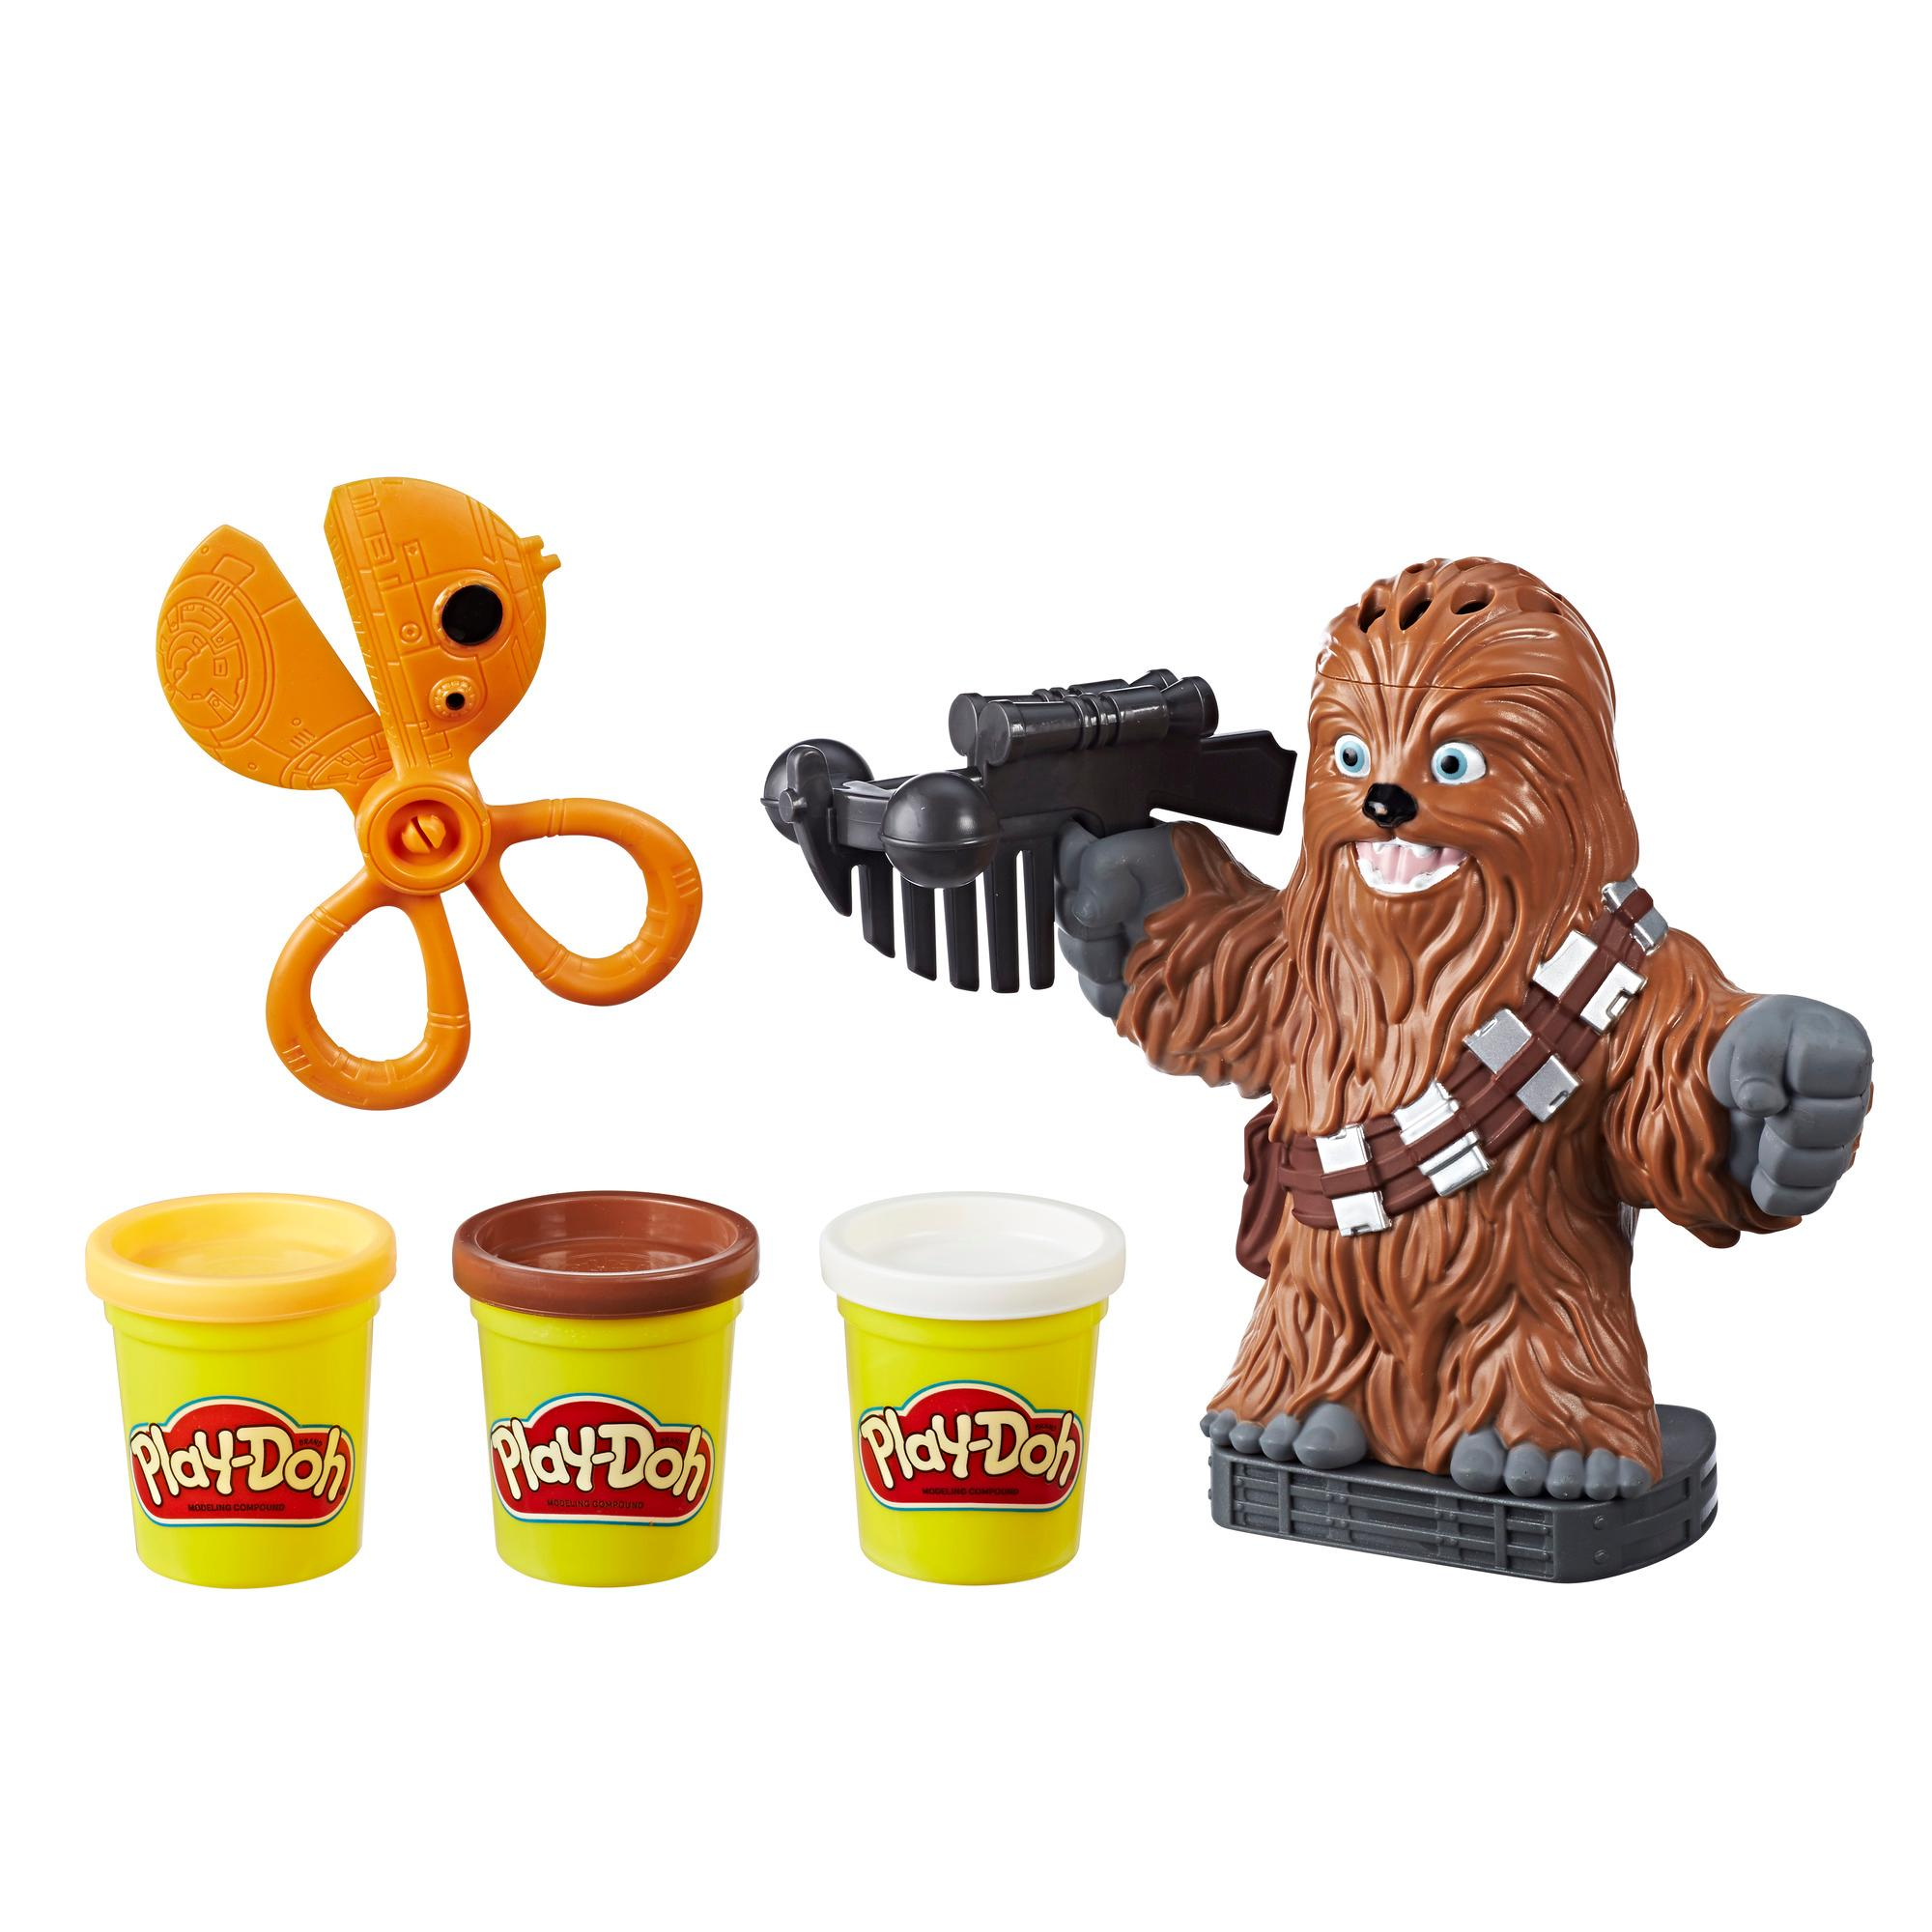 PLAY-DOH STAR WARS CHEWBACCA